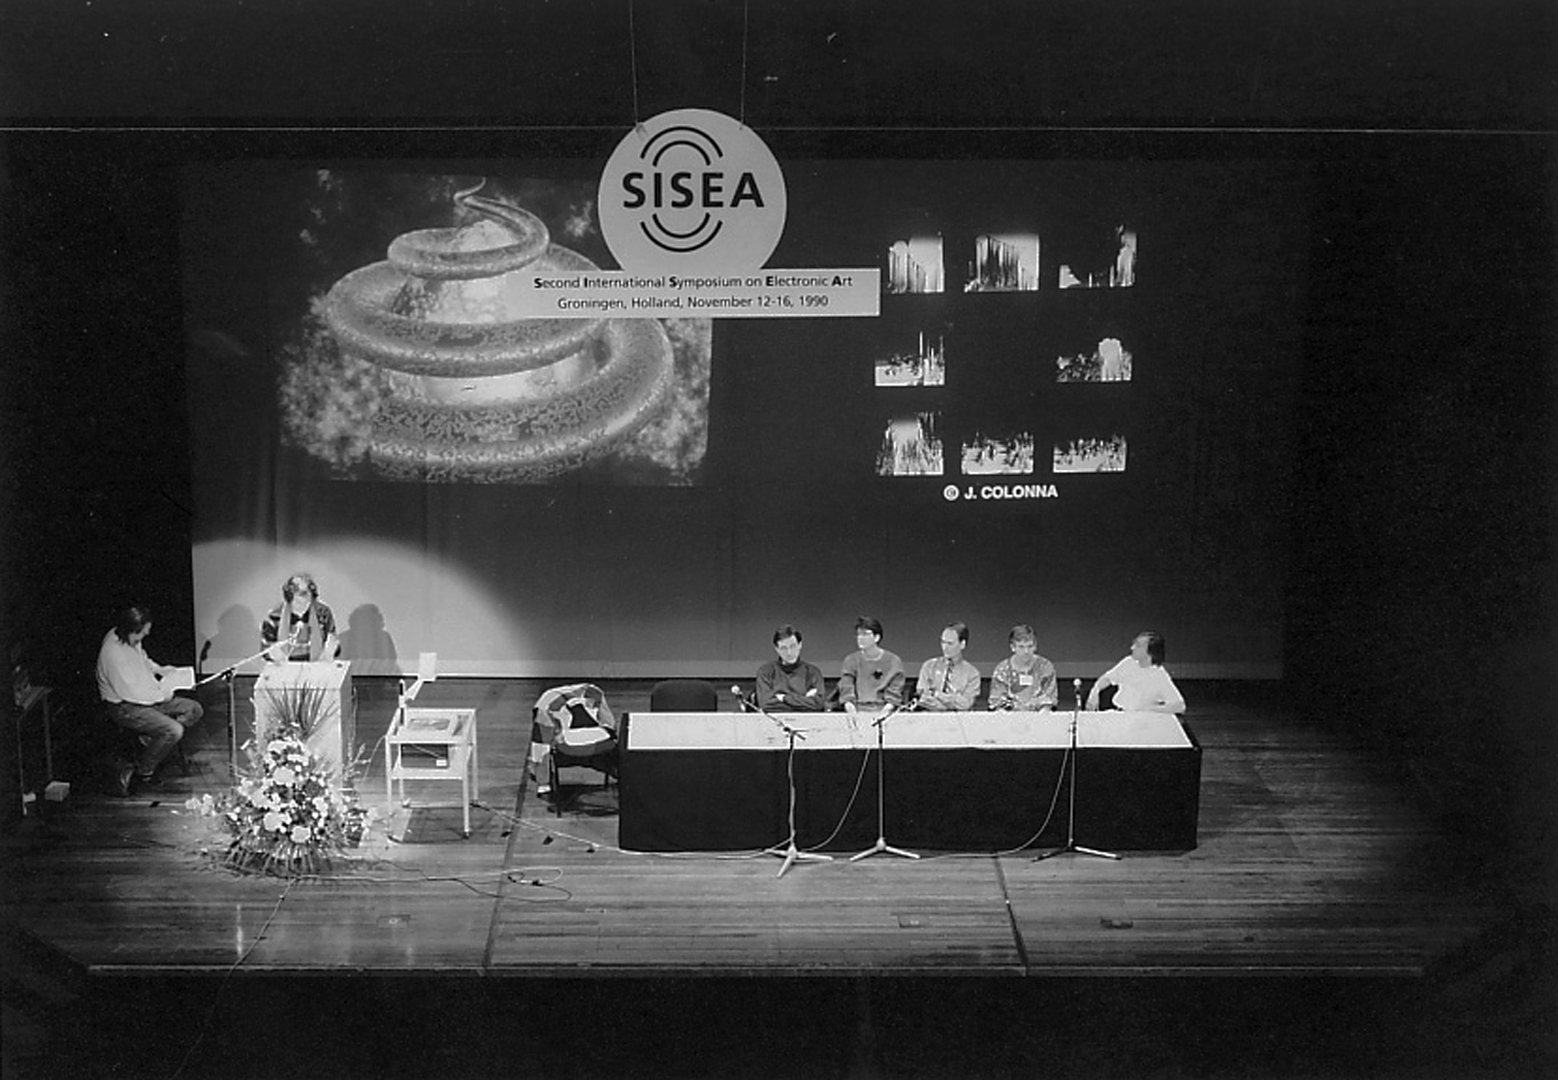 ©SISEA: Second International Symposium on Electronic Art, Carl Eugene Loeffler, Vernon Reed, Fred Truck, and Benjamin J. Britton, Interactive Electronic Art